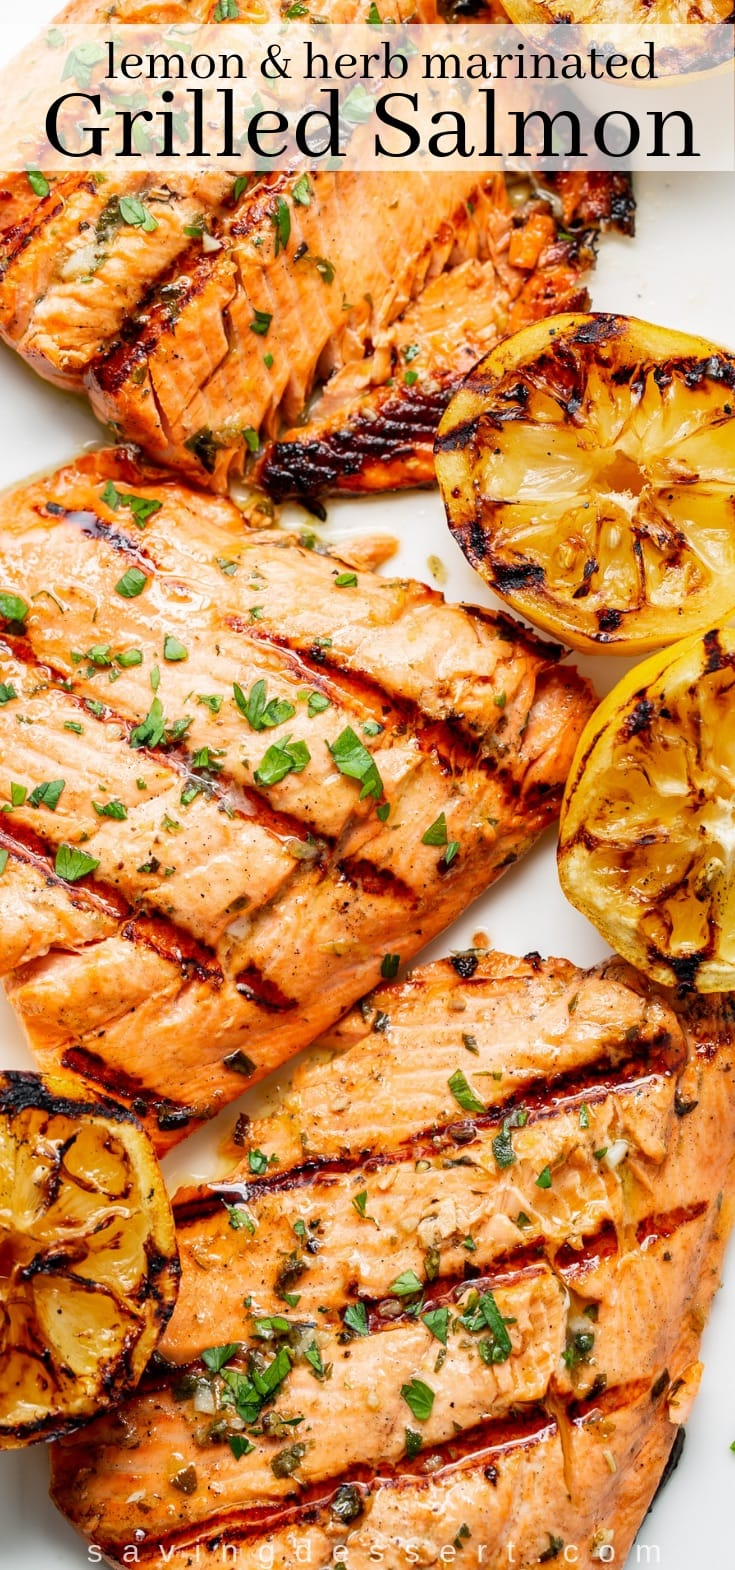 A platter of juicy, grilled salmon fillets with grilled lemon halves